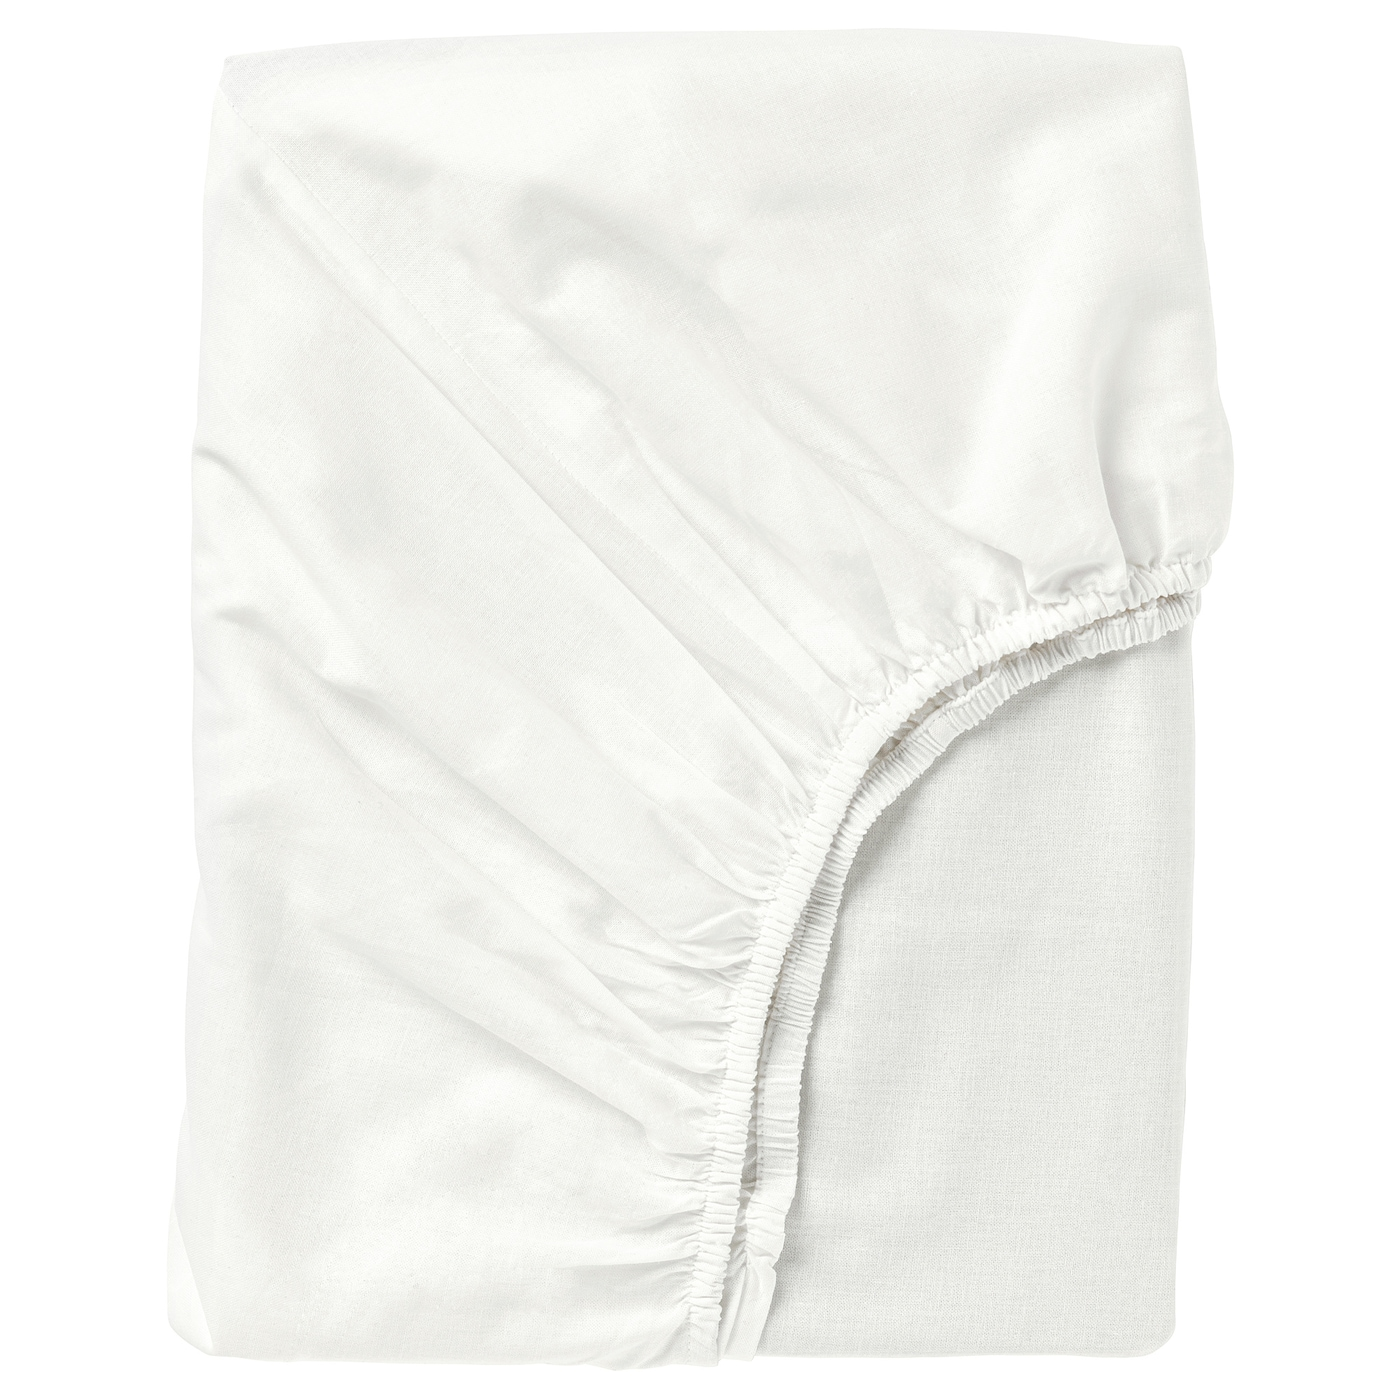 IKEA FÄRGMÅRA fitted sheet Made in 100% cotton ‒ a natural and durable material.